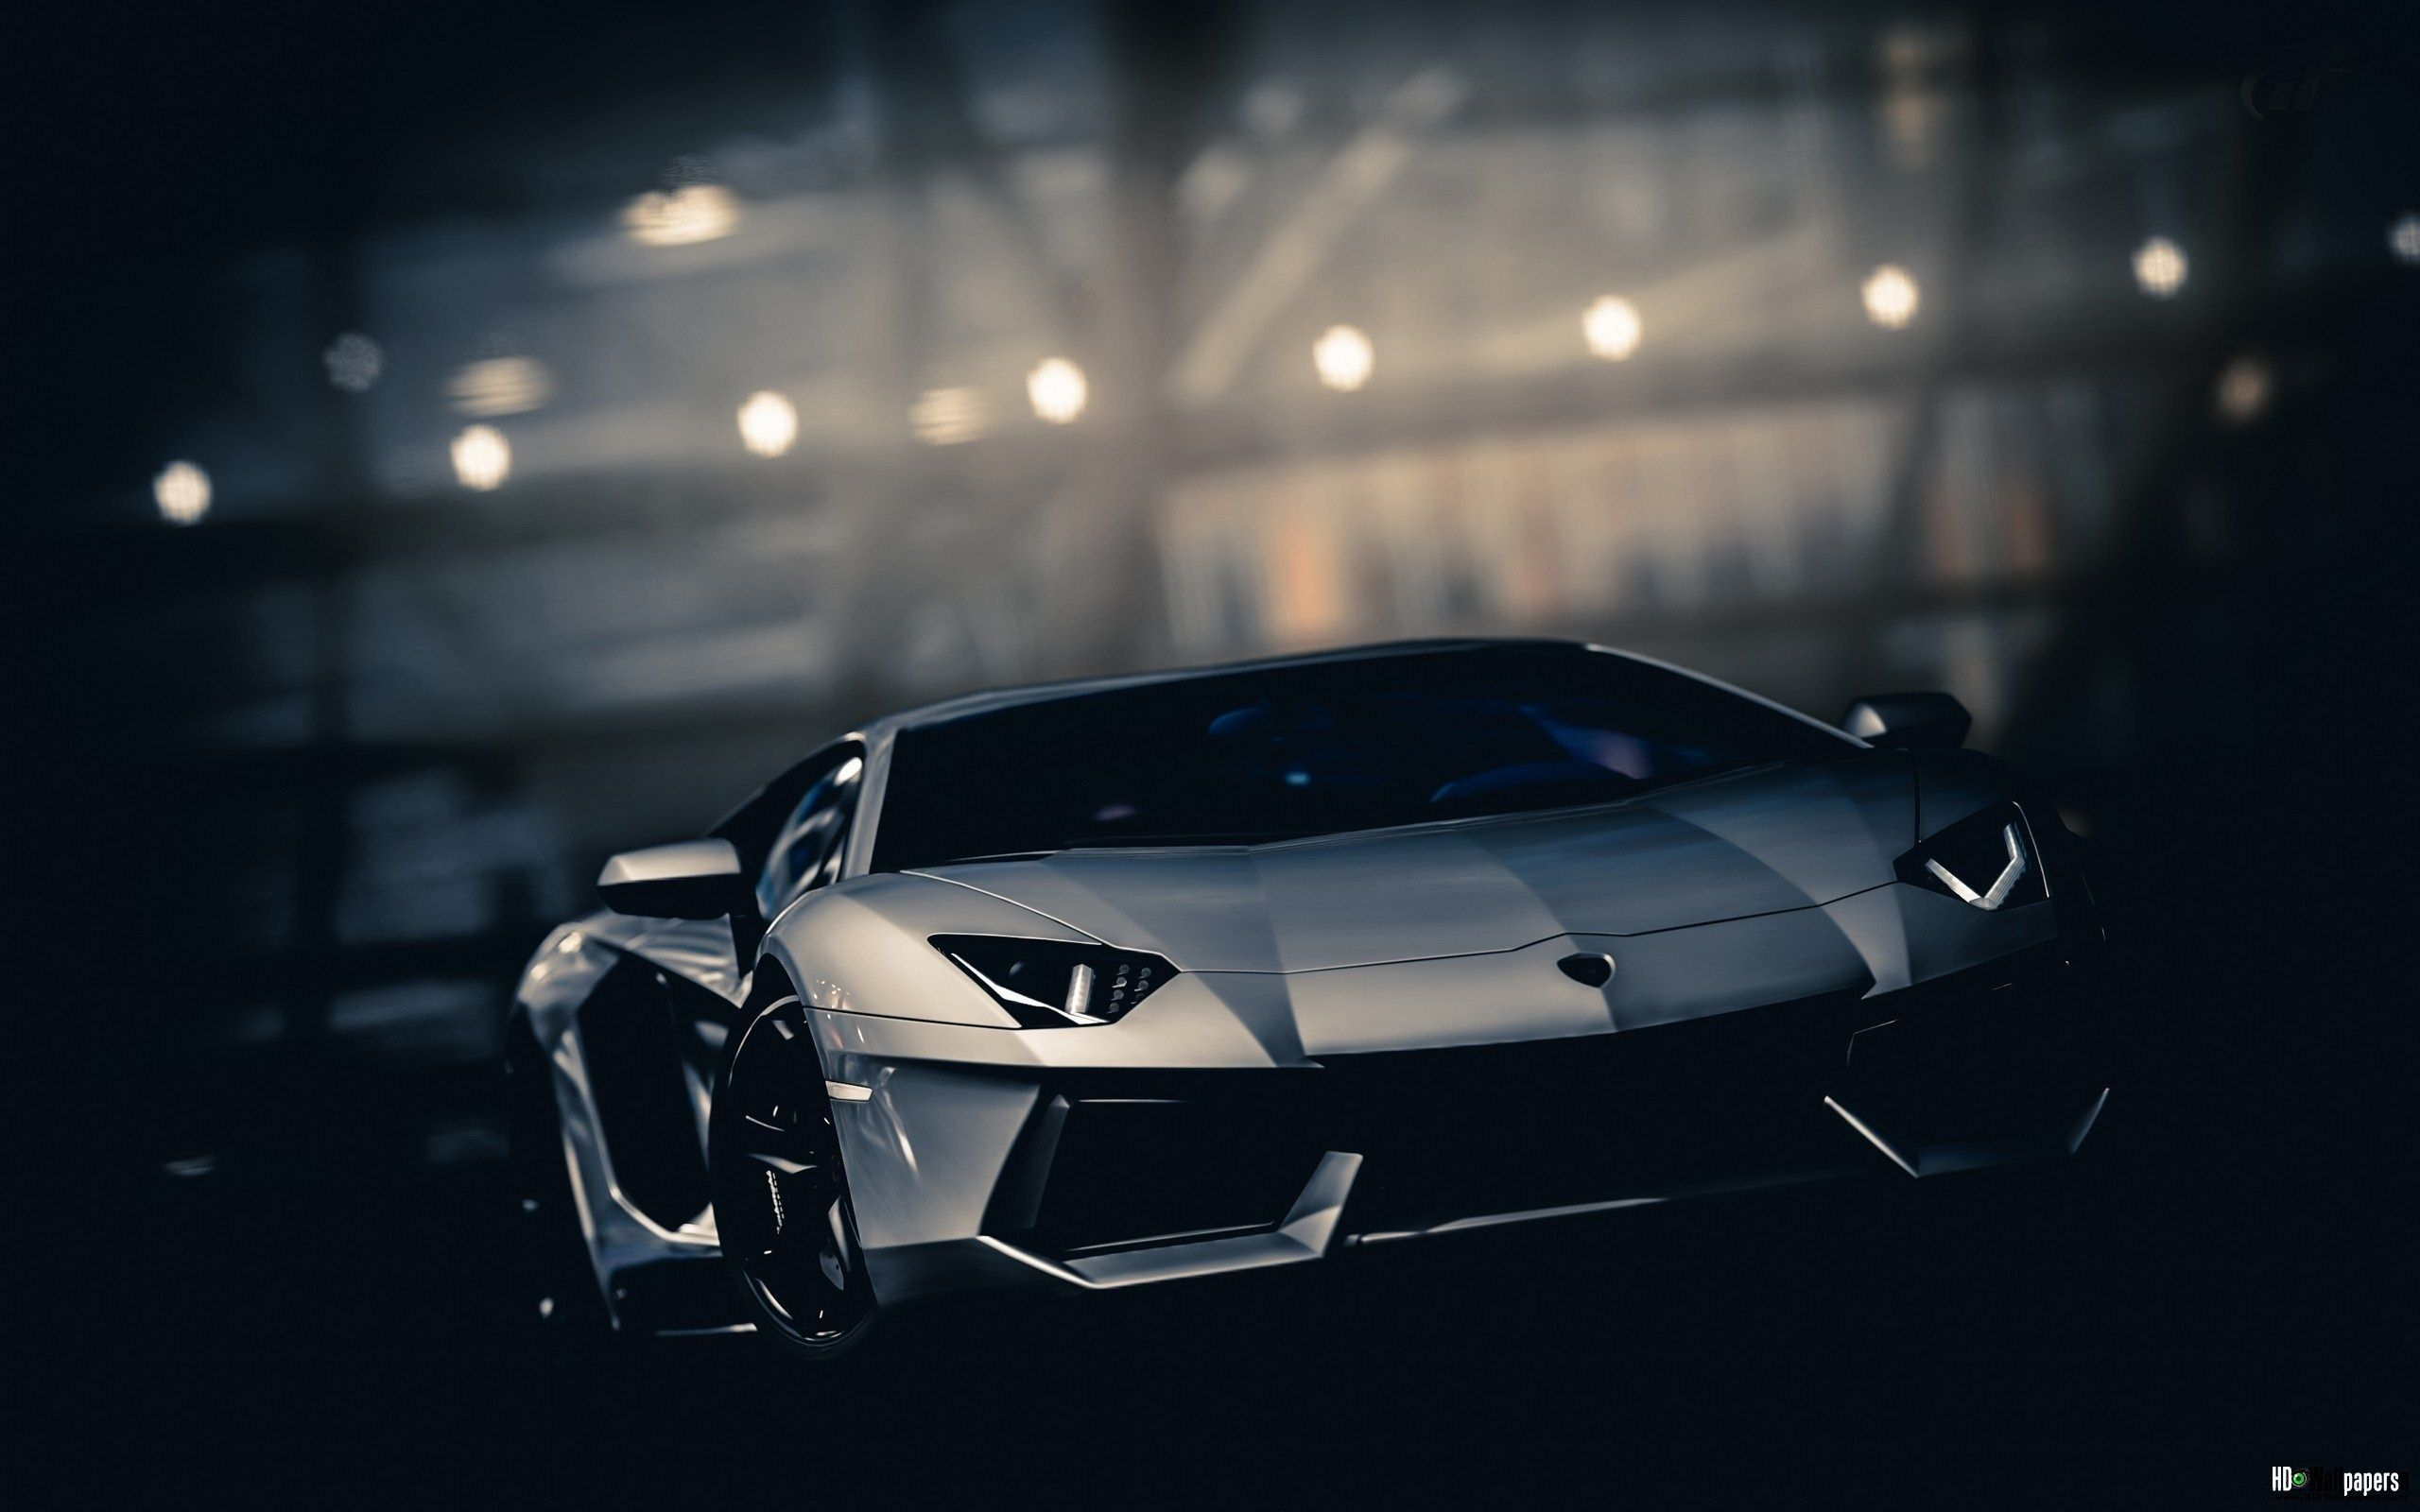 Desktop Wallpaper Hd 3d Full Screen 38 Images Sports Car Wallpaper Lamborghini Aventador Wallpaper Lamborghini Cars